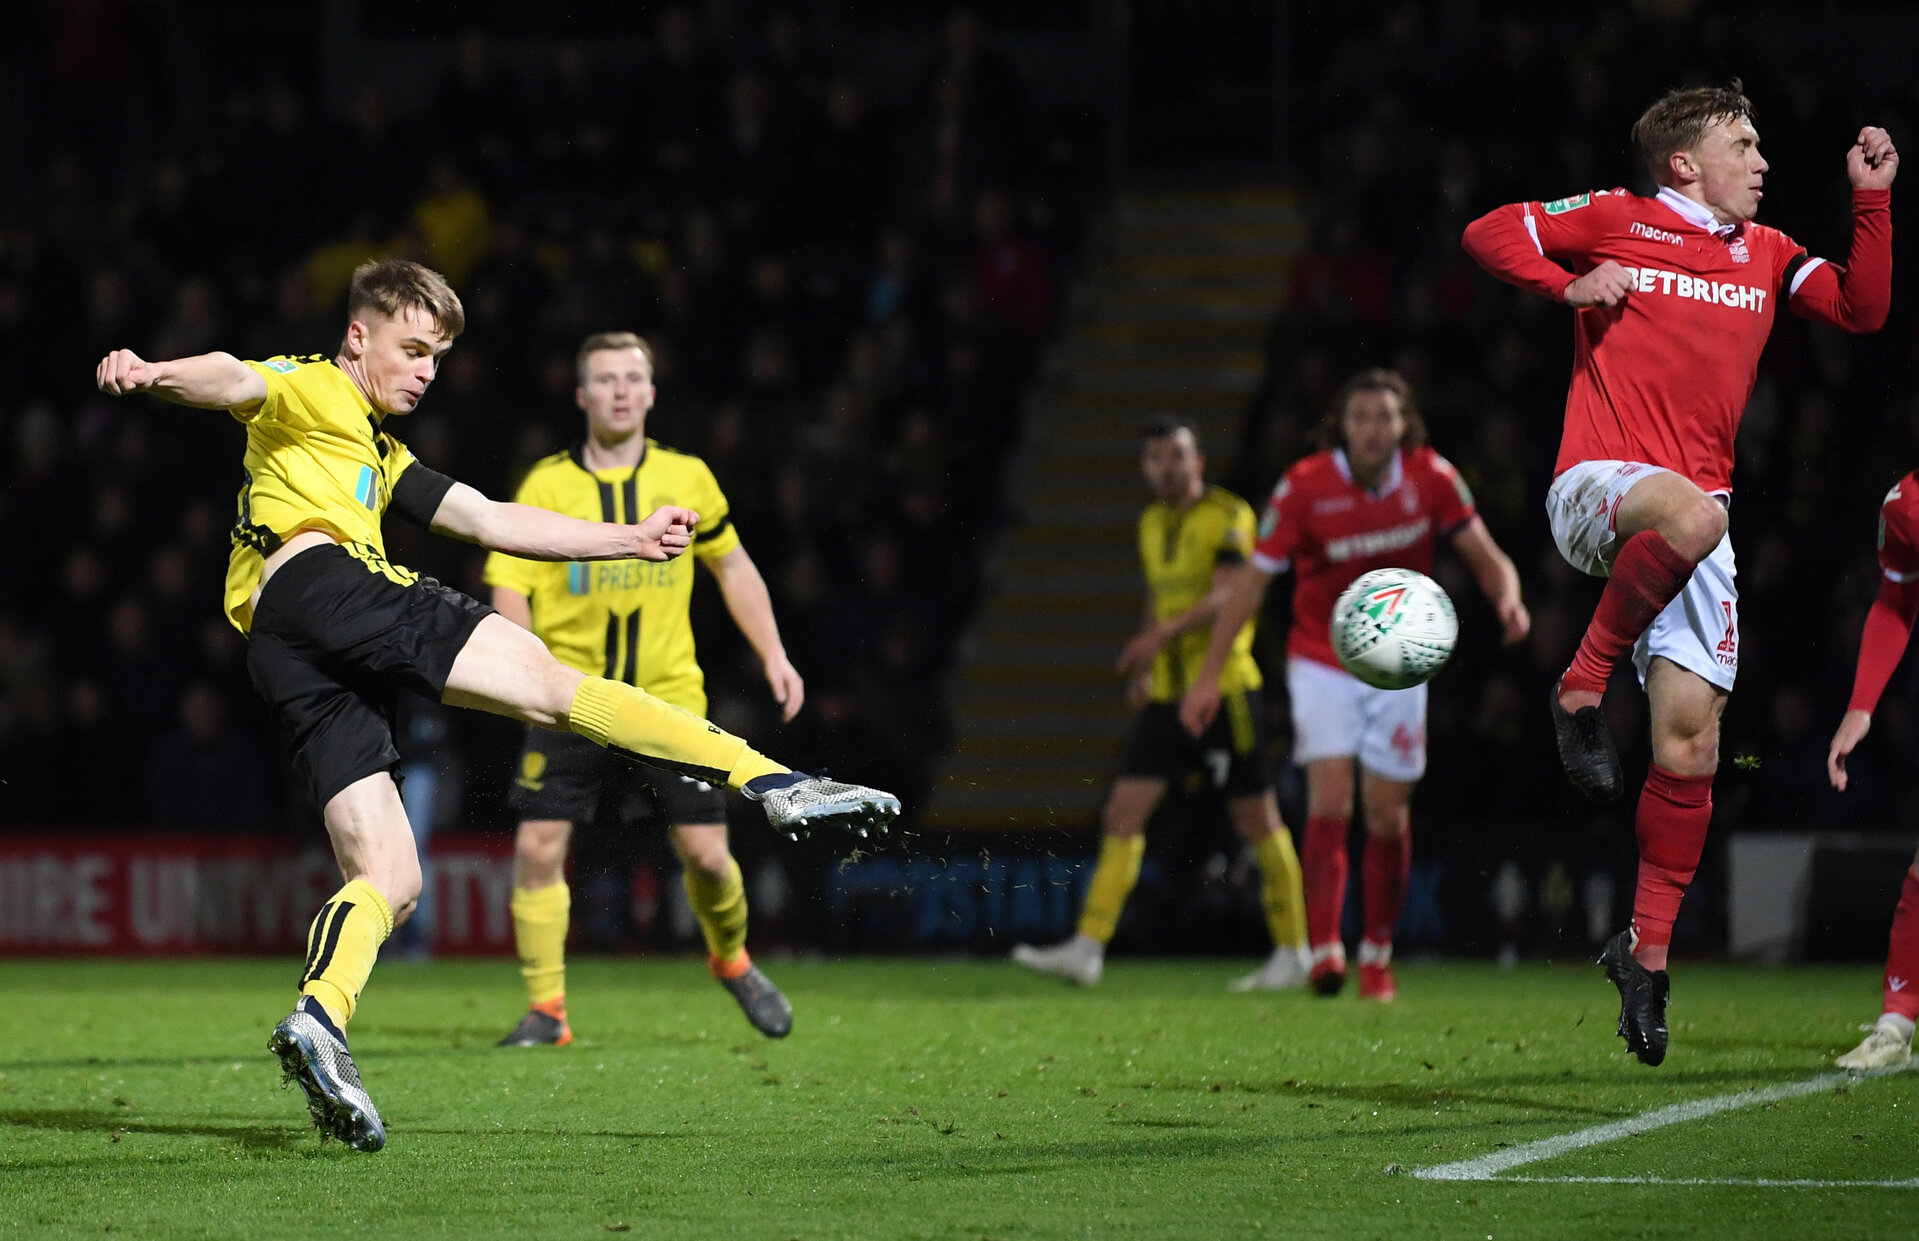 BURTON-UPON-TRENT, ENGLAND - OCTOBER 30:  Jake Hesketh of Burton Albion scores his team's third goal during the Carabao Cup Fourth Round match between Burton Albion and Nottingham Forest at Pirelli Stadium on October 30, 2018 in Burton-upon-Trent, England.  (Photo by Laurence Griffiths/Getty Images)